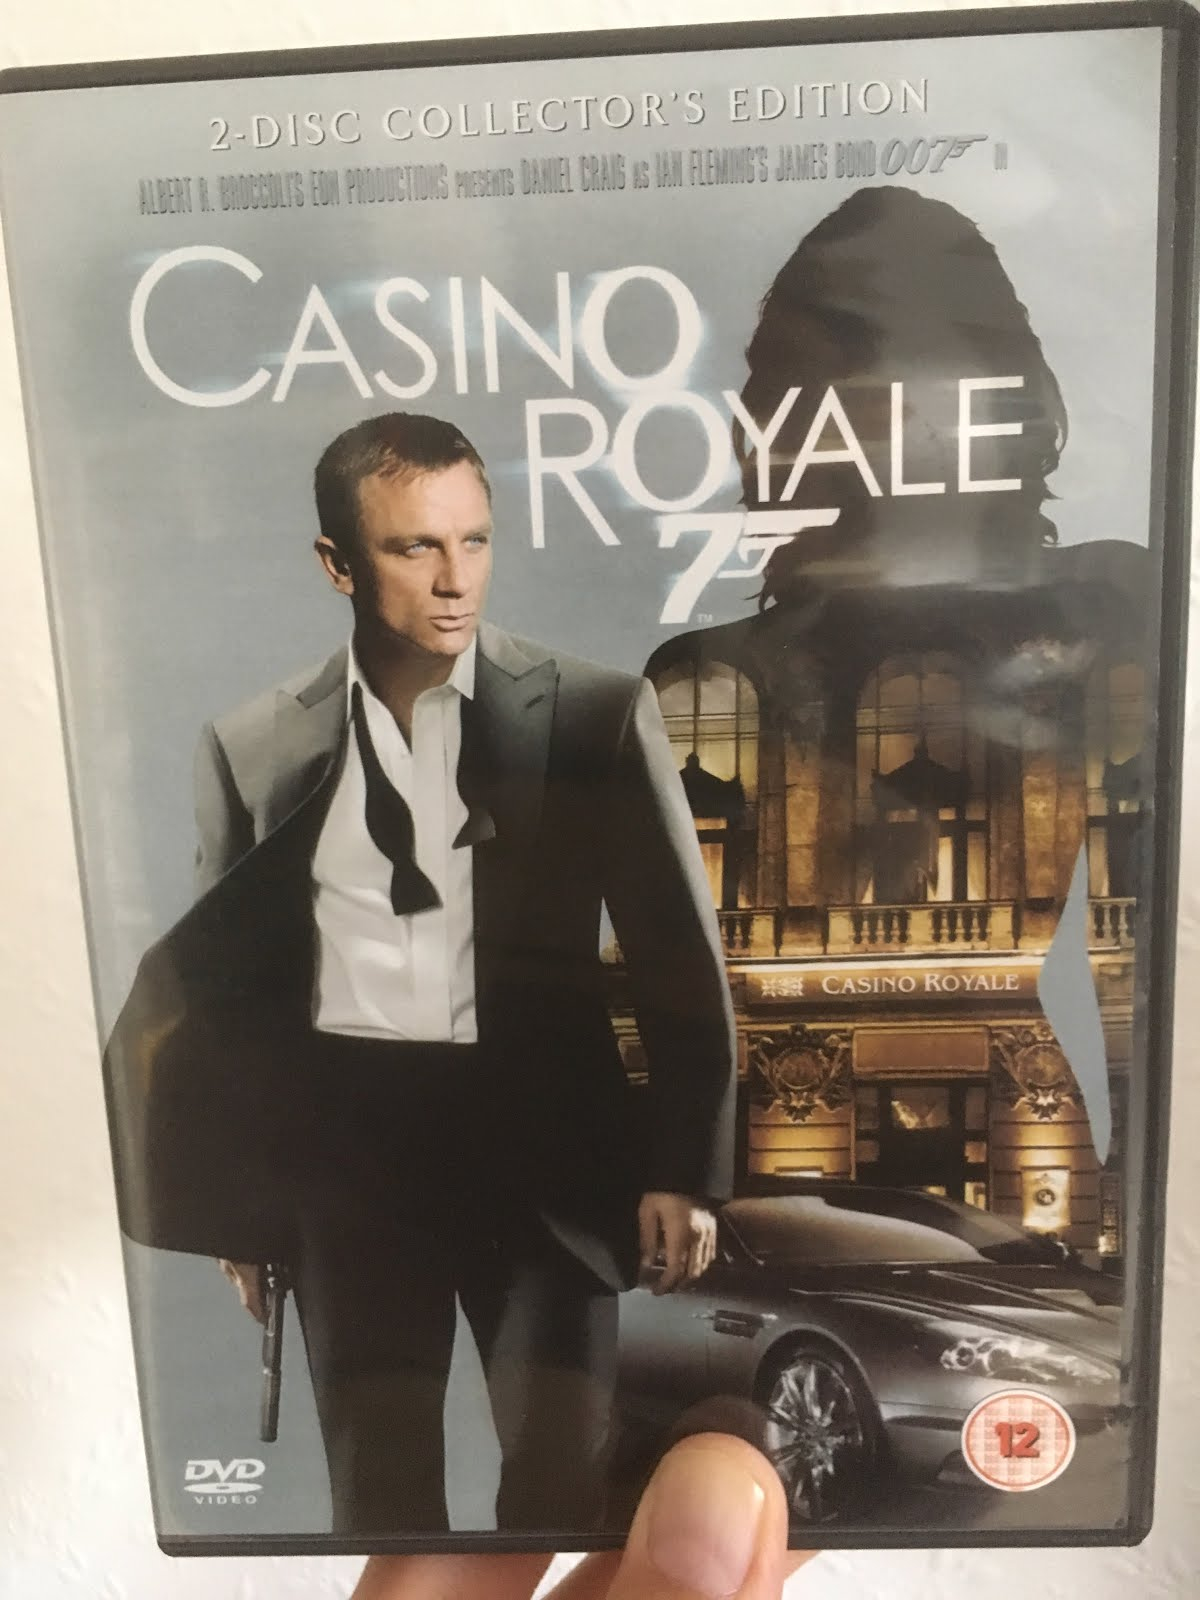 Punto tutto al casino royale